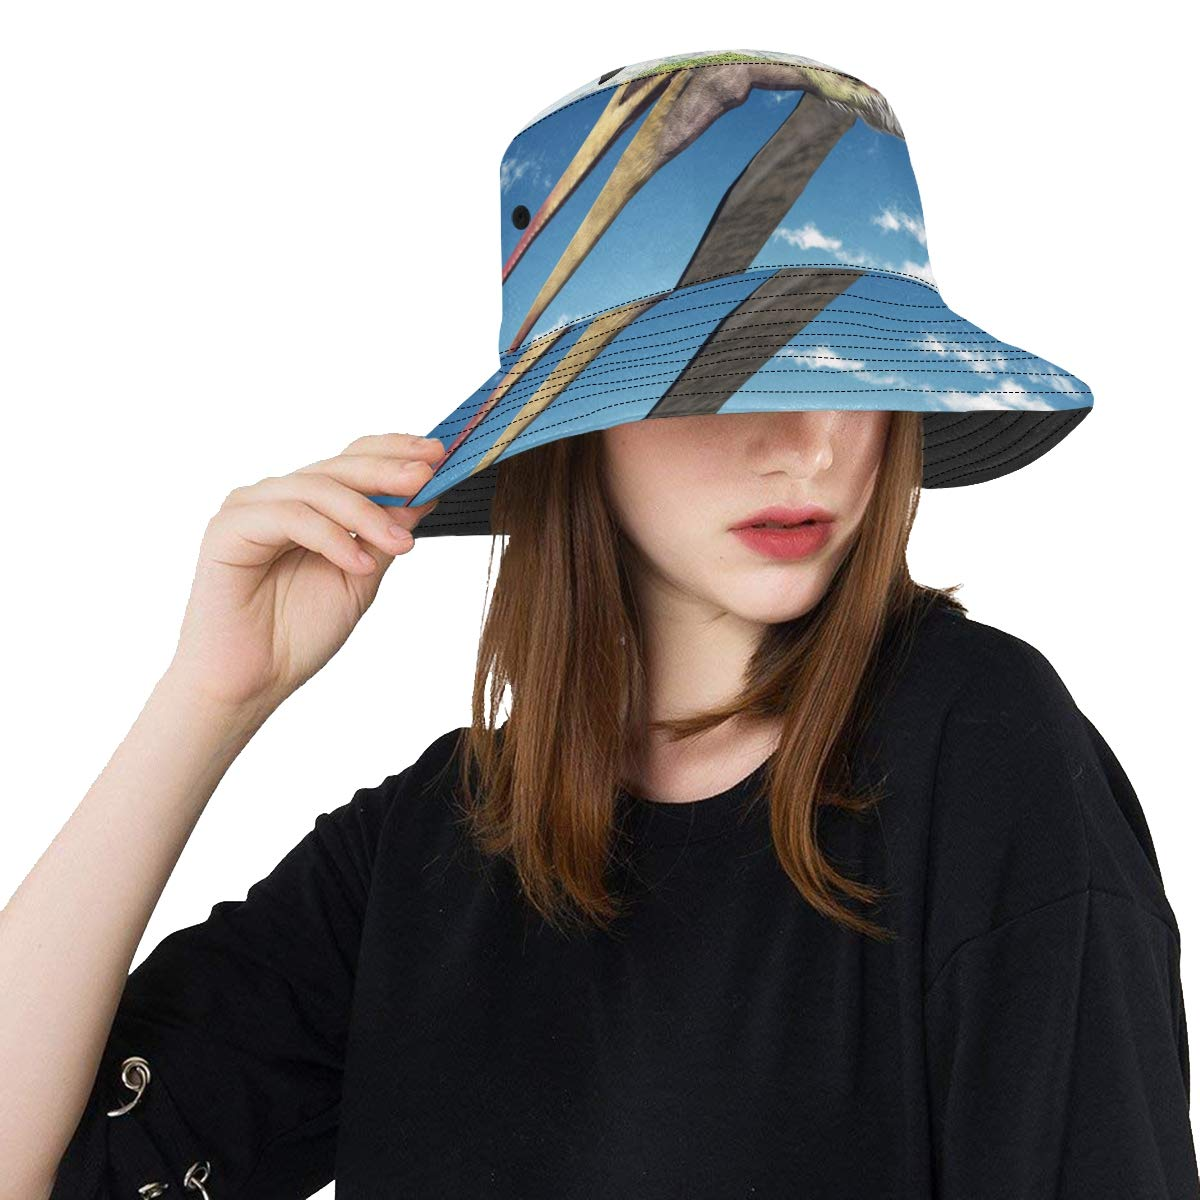 Sensitive Pterosaur New Summer Unisex Cotton Fashion Fishing Sun Bucket Hats for Kid Teens Women and Men with Customize Top Packable Fisherman Cap for Outdoor Travel